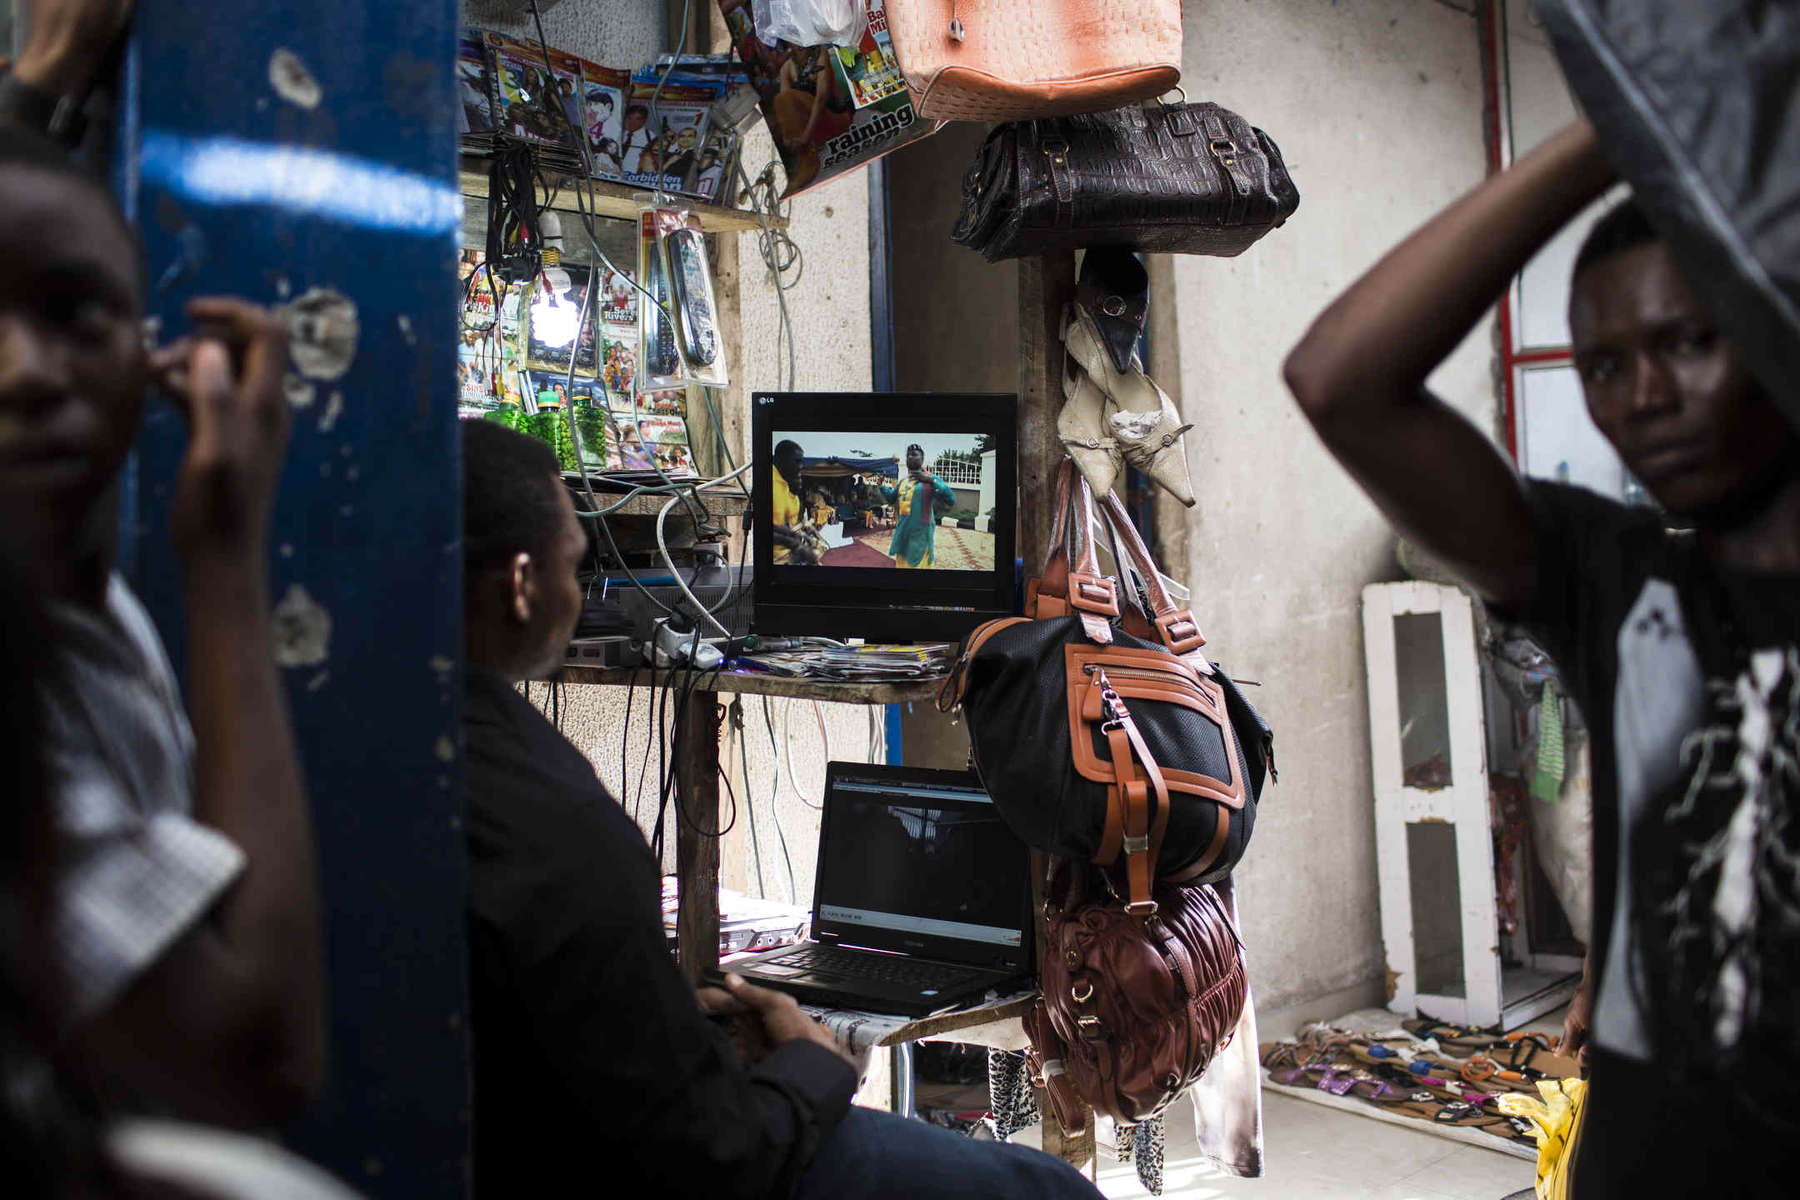 At a market in Lekki, Lagos, a man watches a Nollywood movie as porters bustle around and business is conducted on May 26.